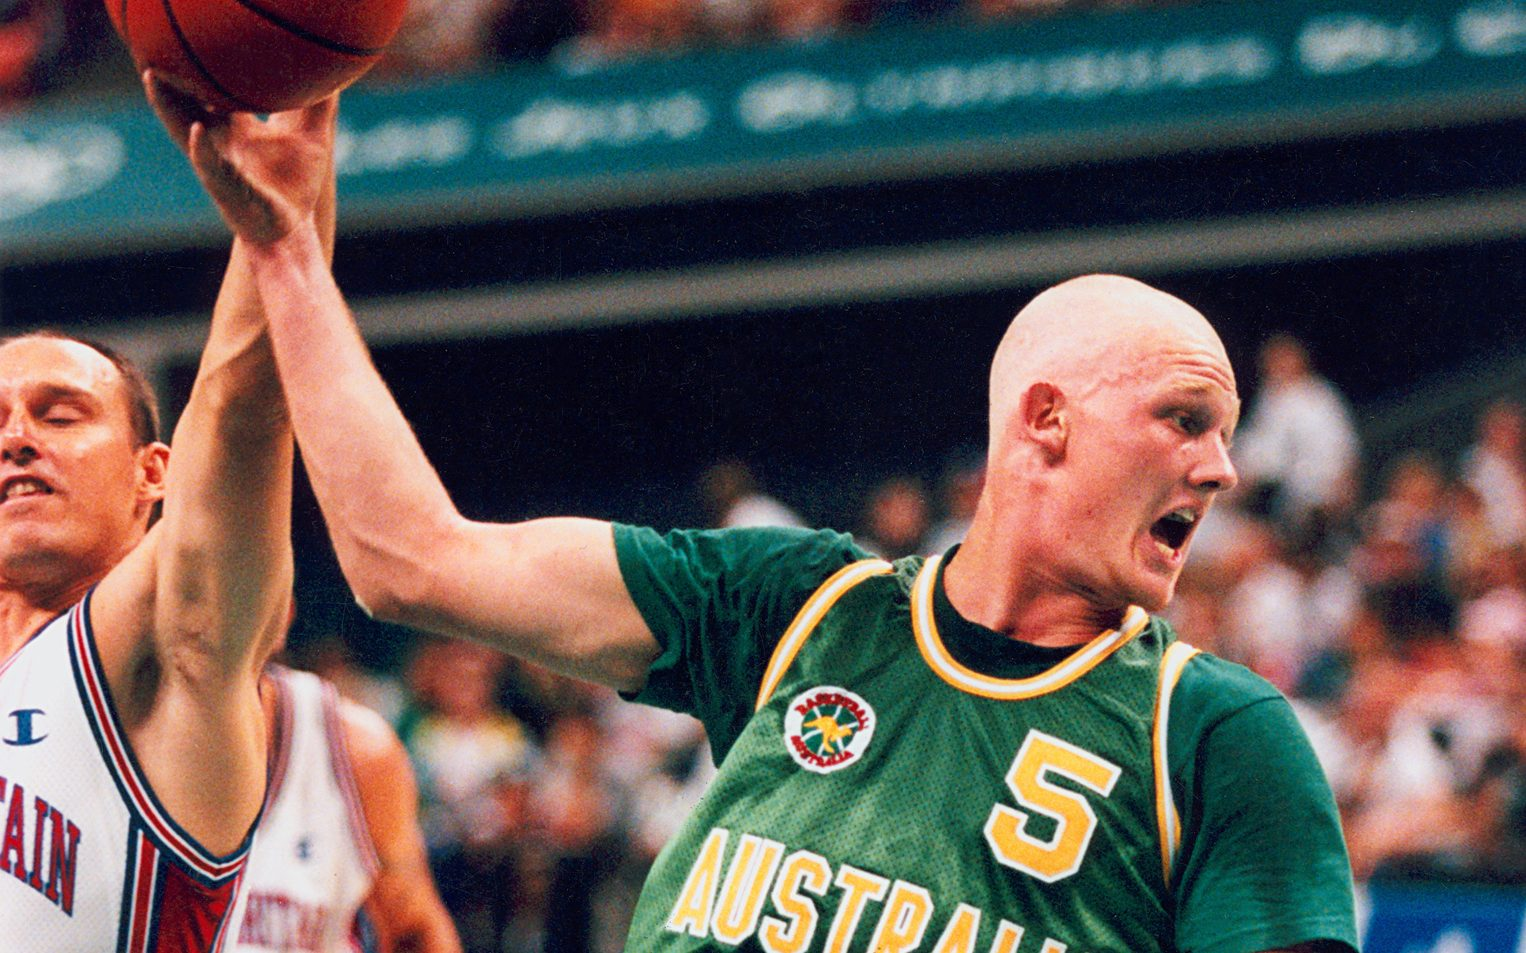 Sachs to be inducted into Australian Basketball Hall of Fame